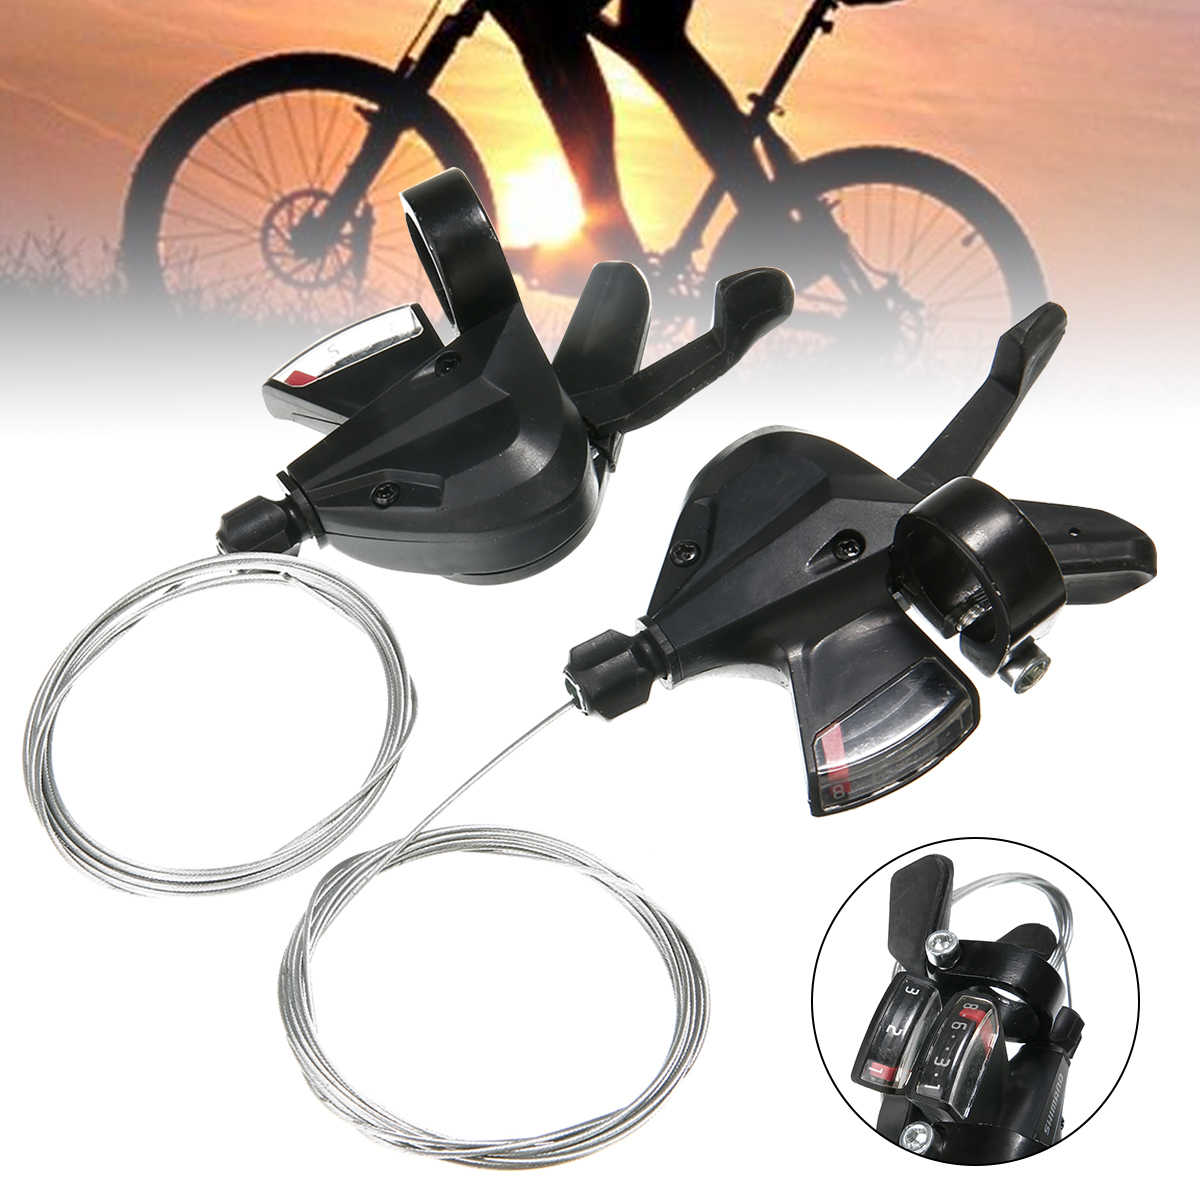 3x8 Speed Derailleurs Lever Shifter Brake Lever Trigger MTB Bike Bicycle Part US